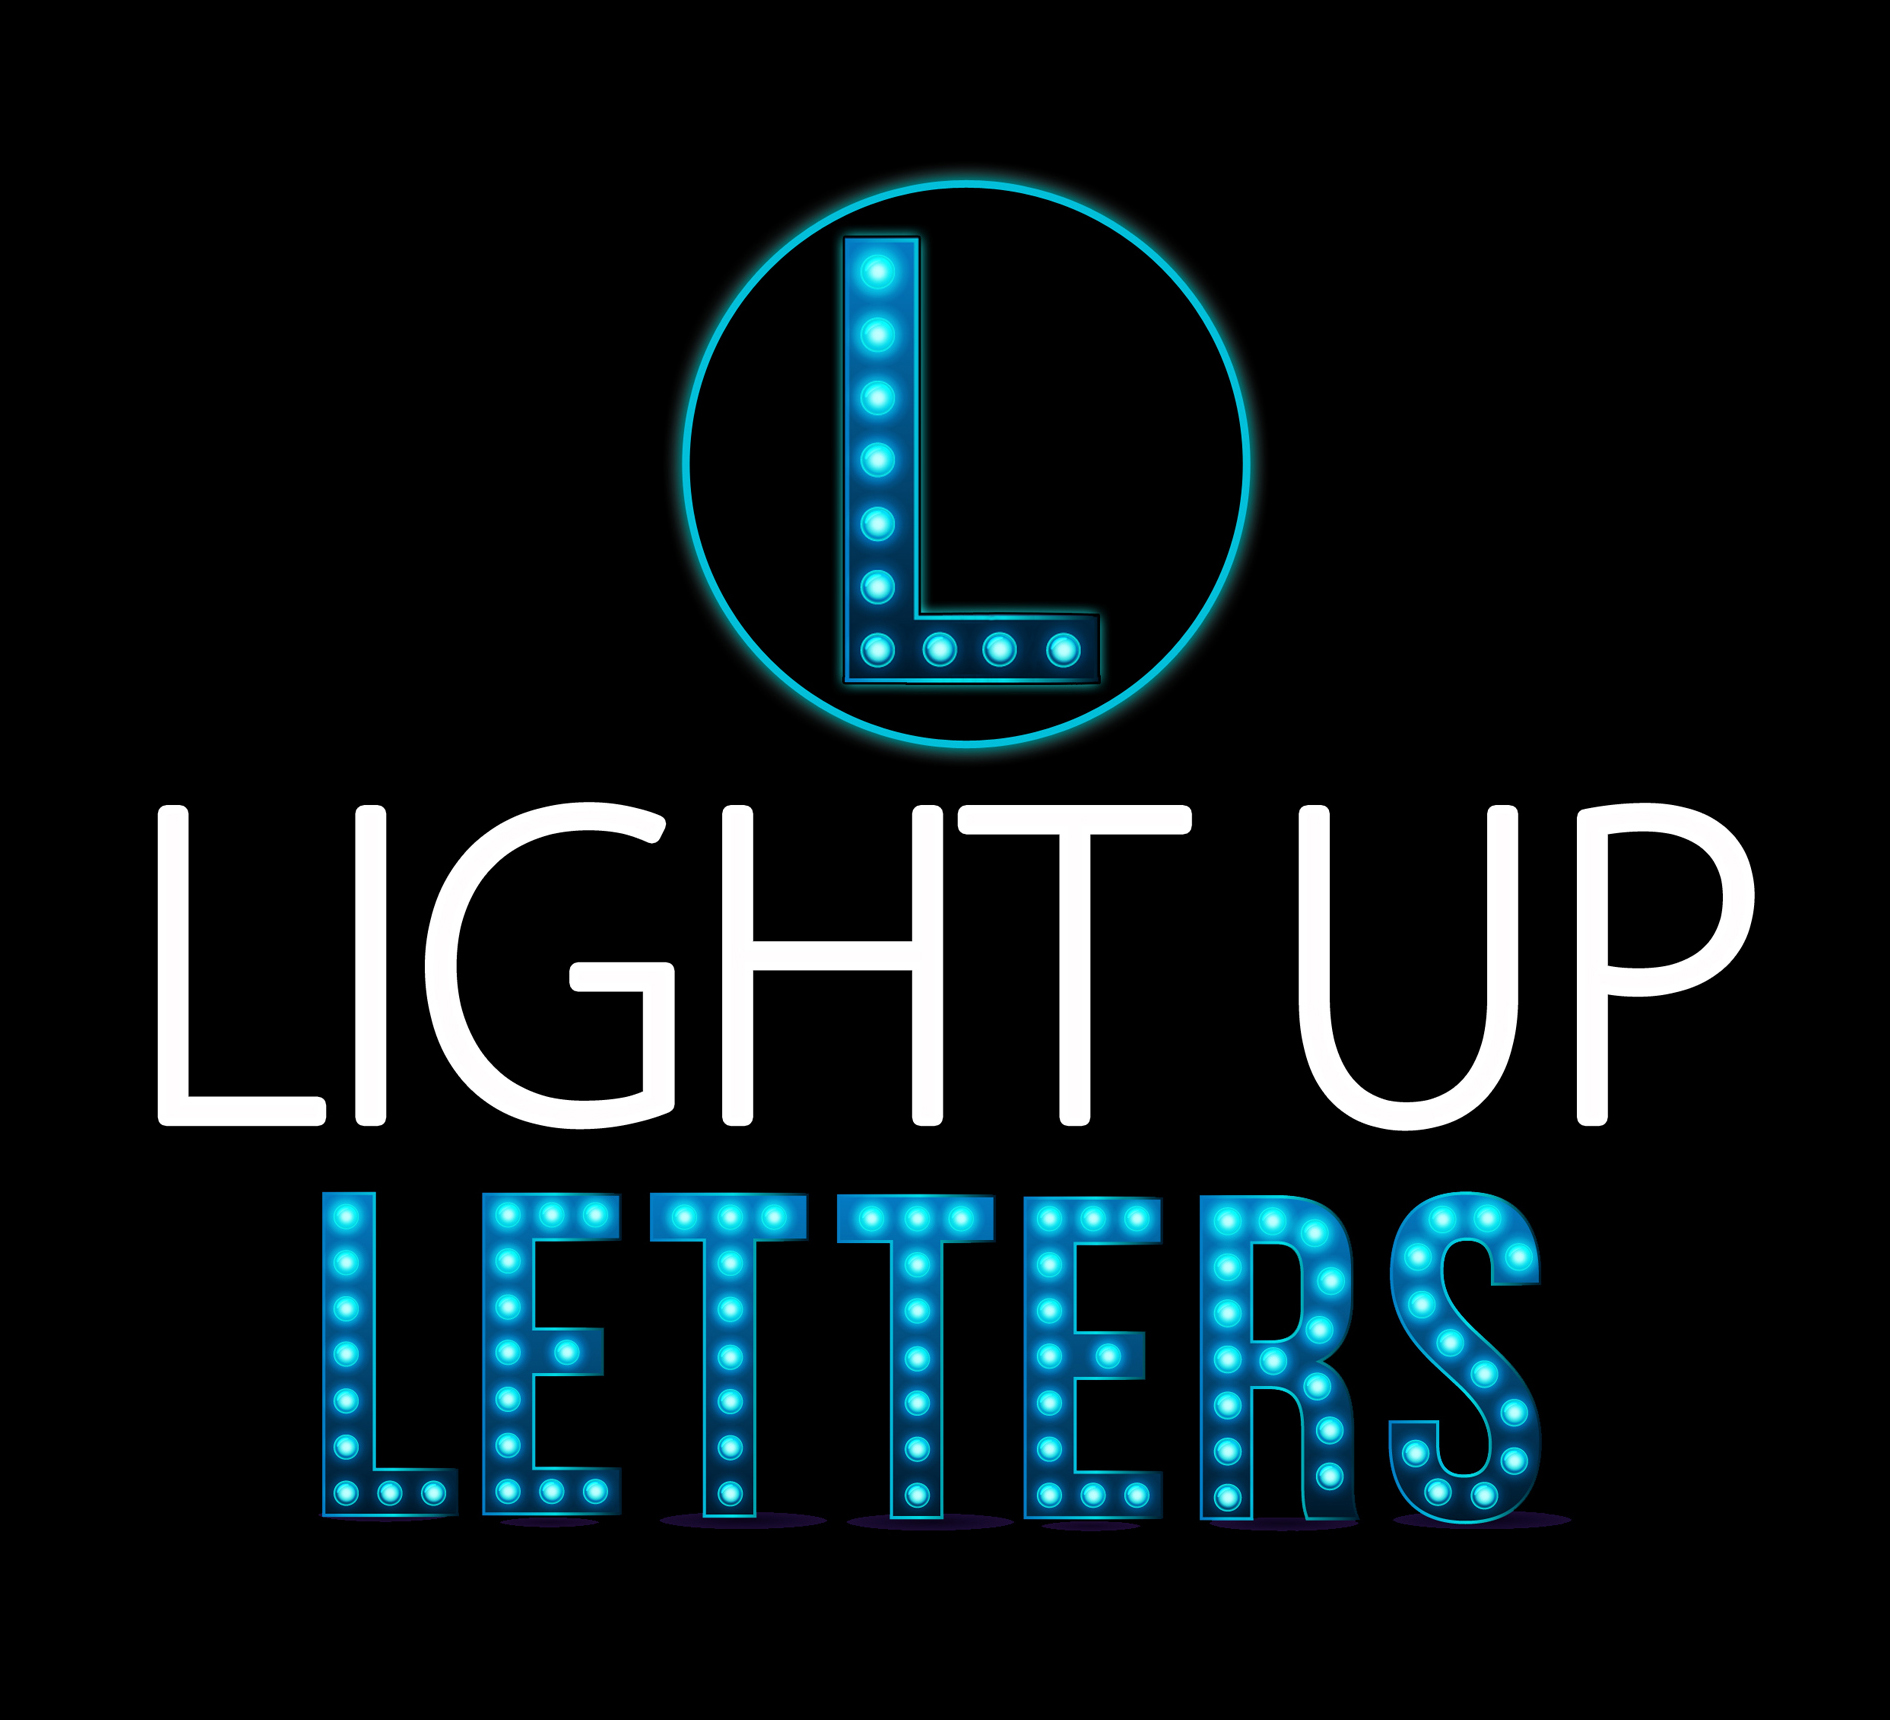 Light up letter bali wedding event rentals in bali for Light up letters